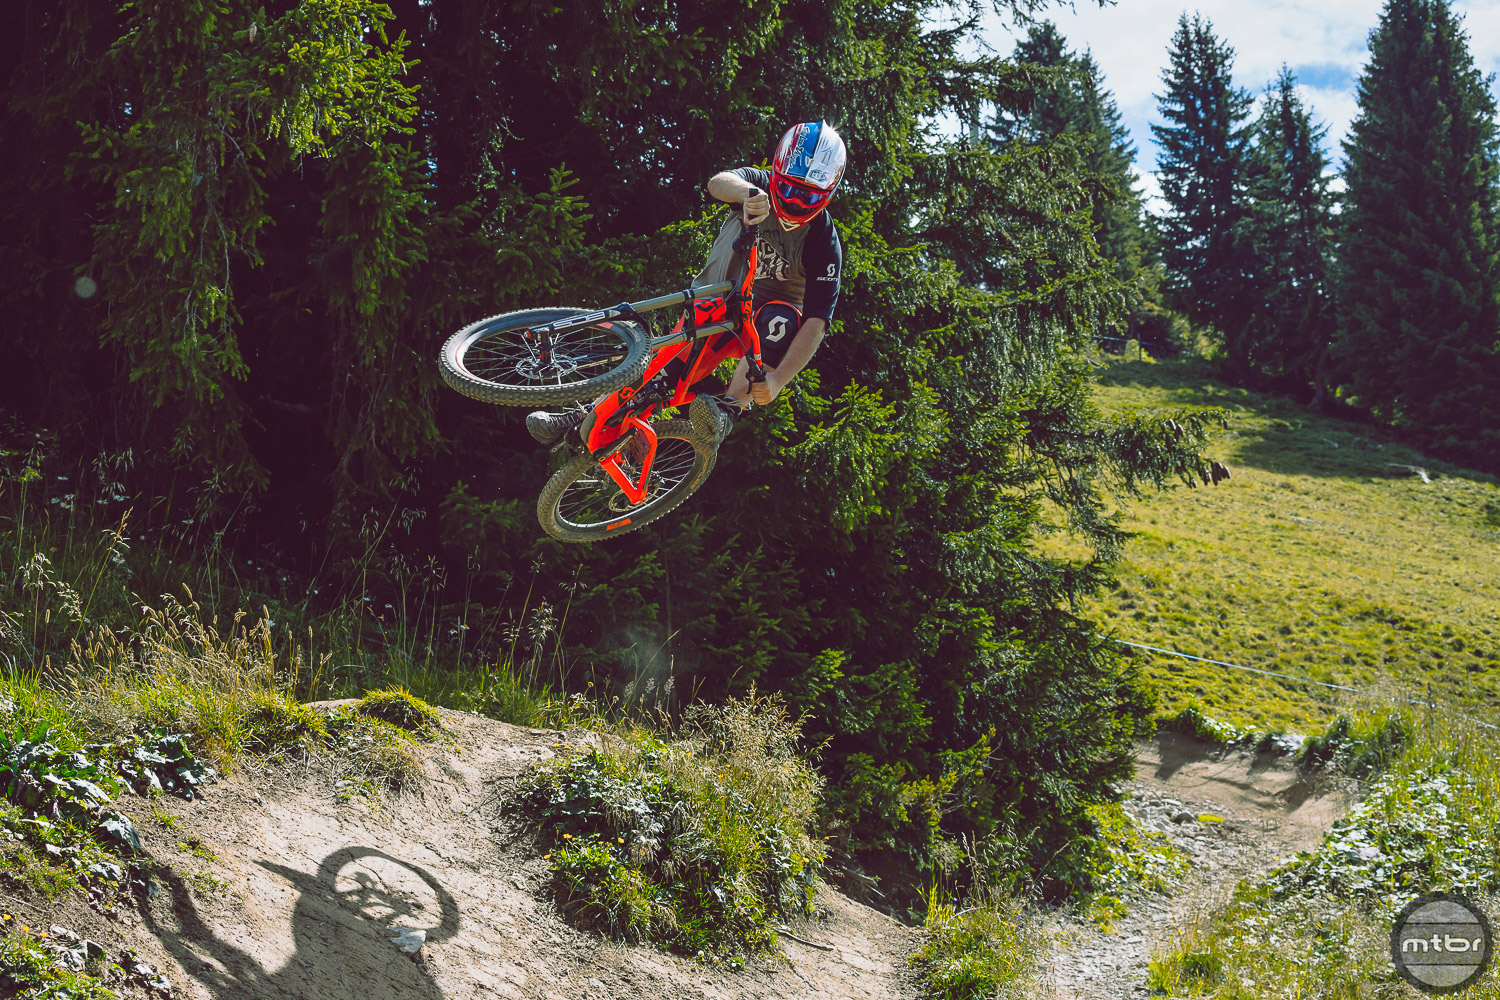 Launching off a hip at Champéry Bike Park. (photo courtesy of François Marclay)